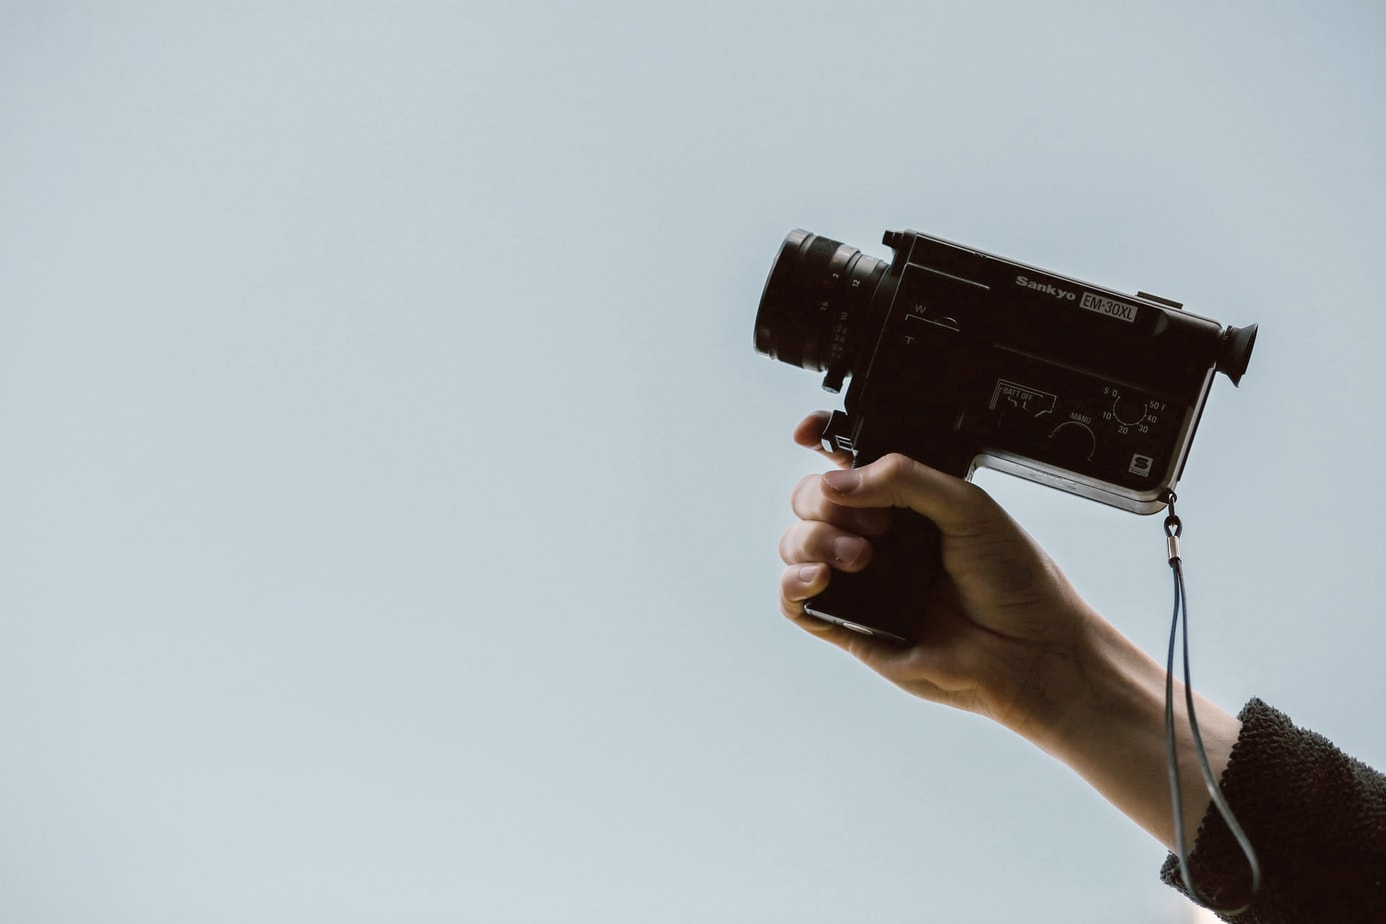 Hand holding a video camera that can be used for video marketing